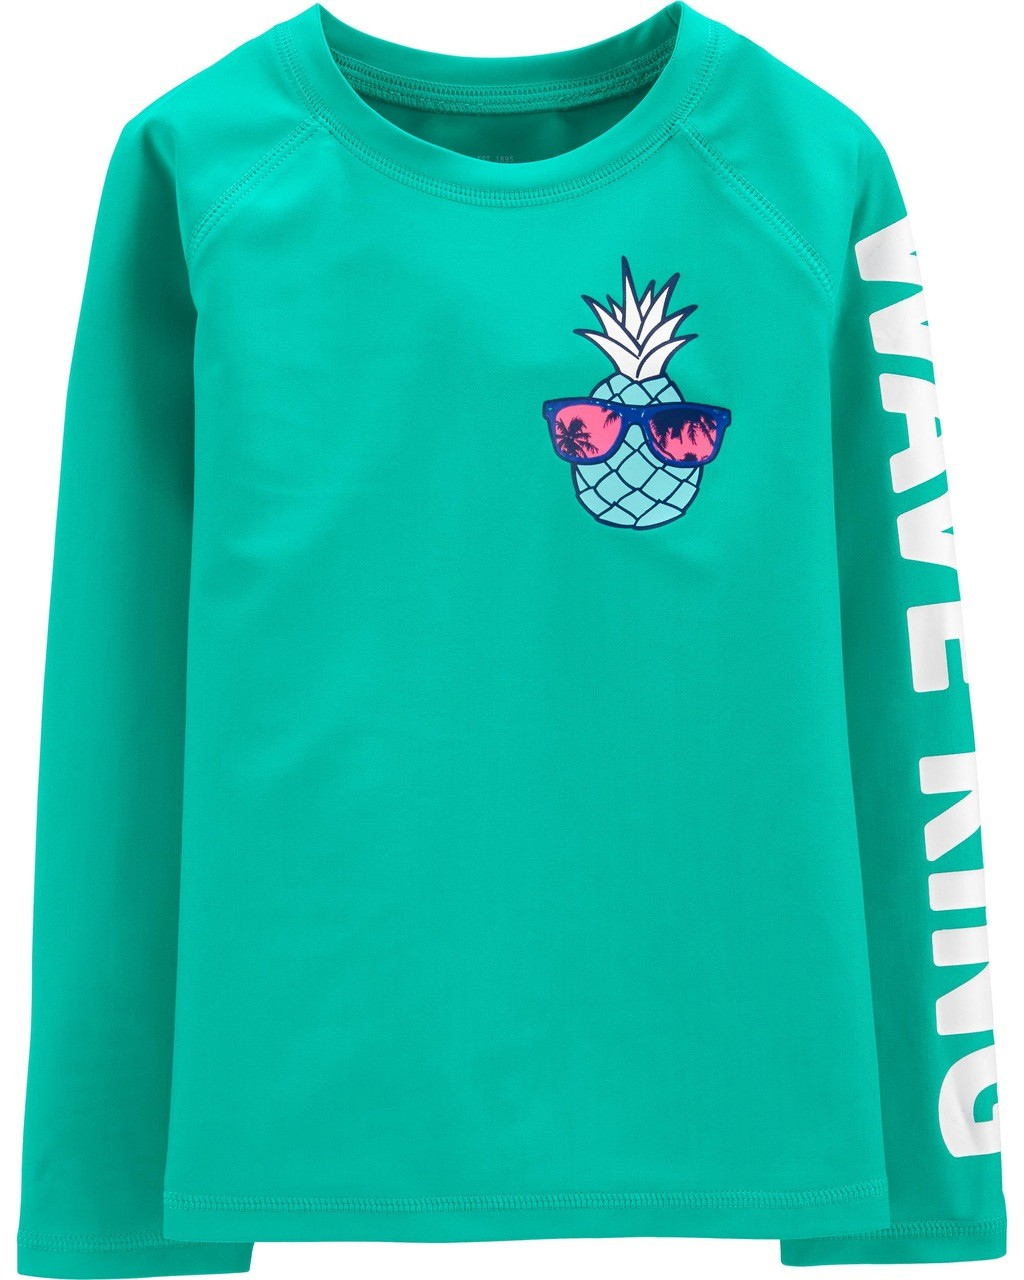 Camiseta Praia Abacaxi Wave King Oshkosh